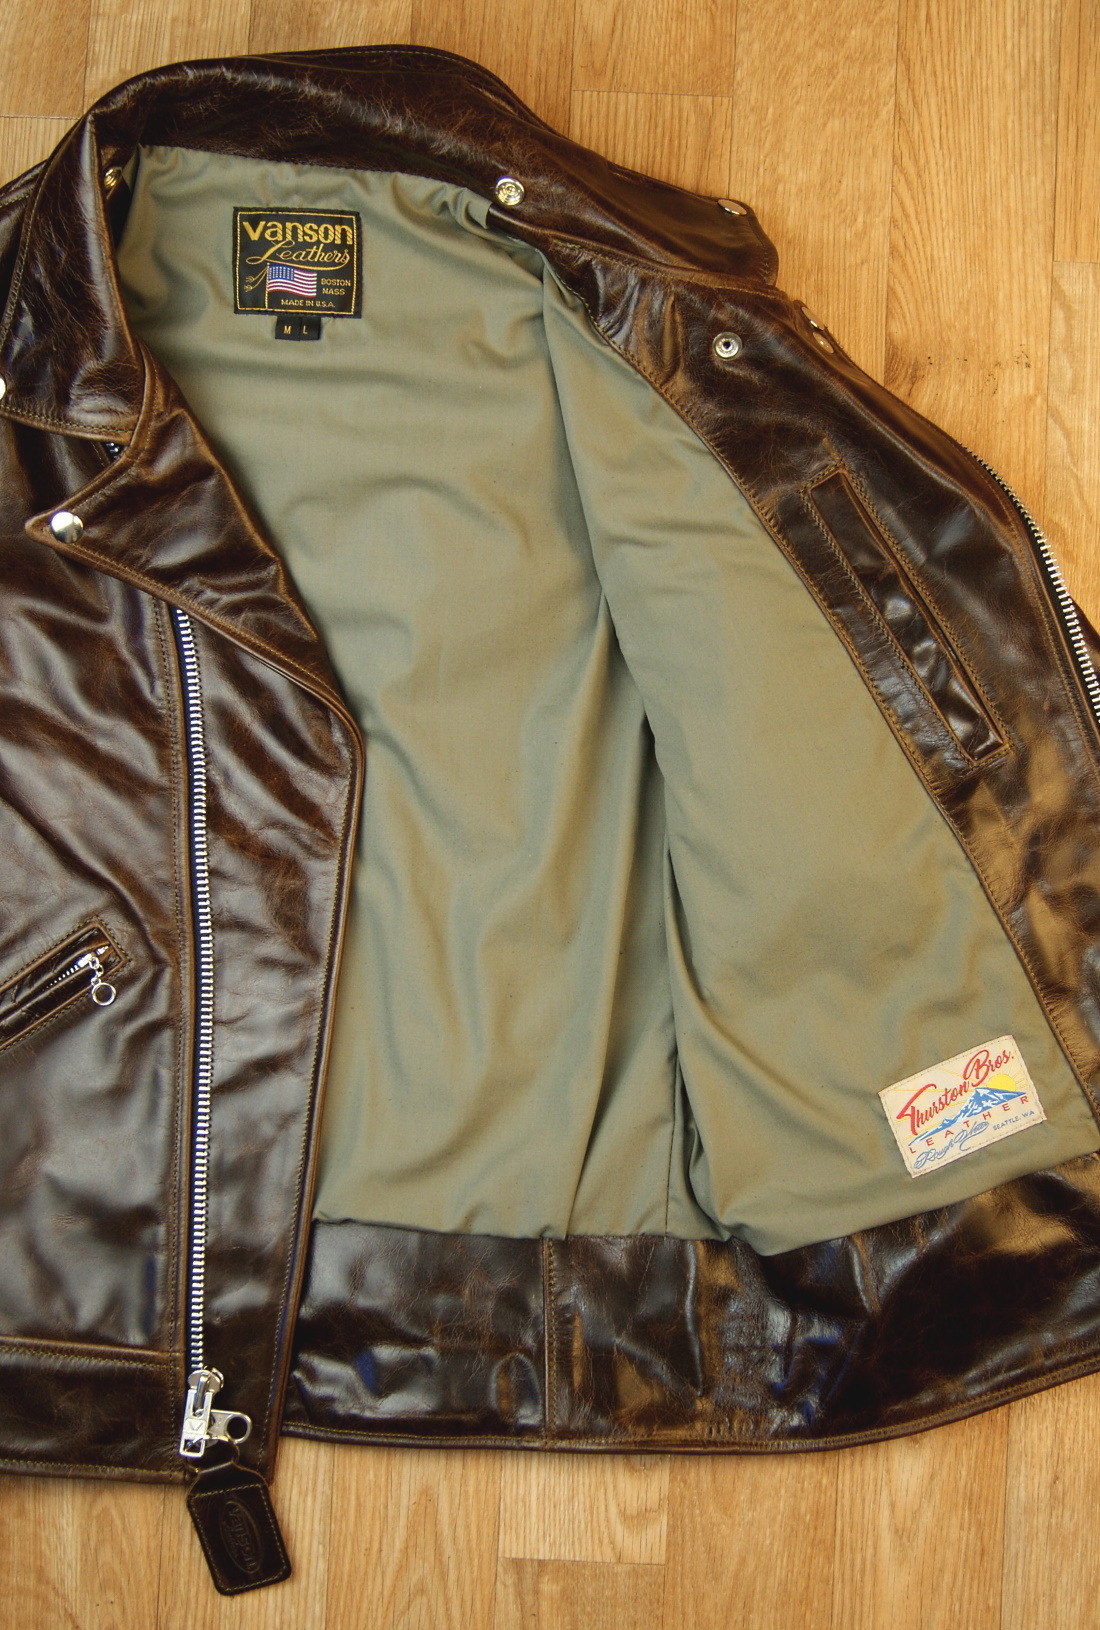 Vanson Daredevil Bainbridge ML with Olive Tan Lining Front Open.jpg